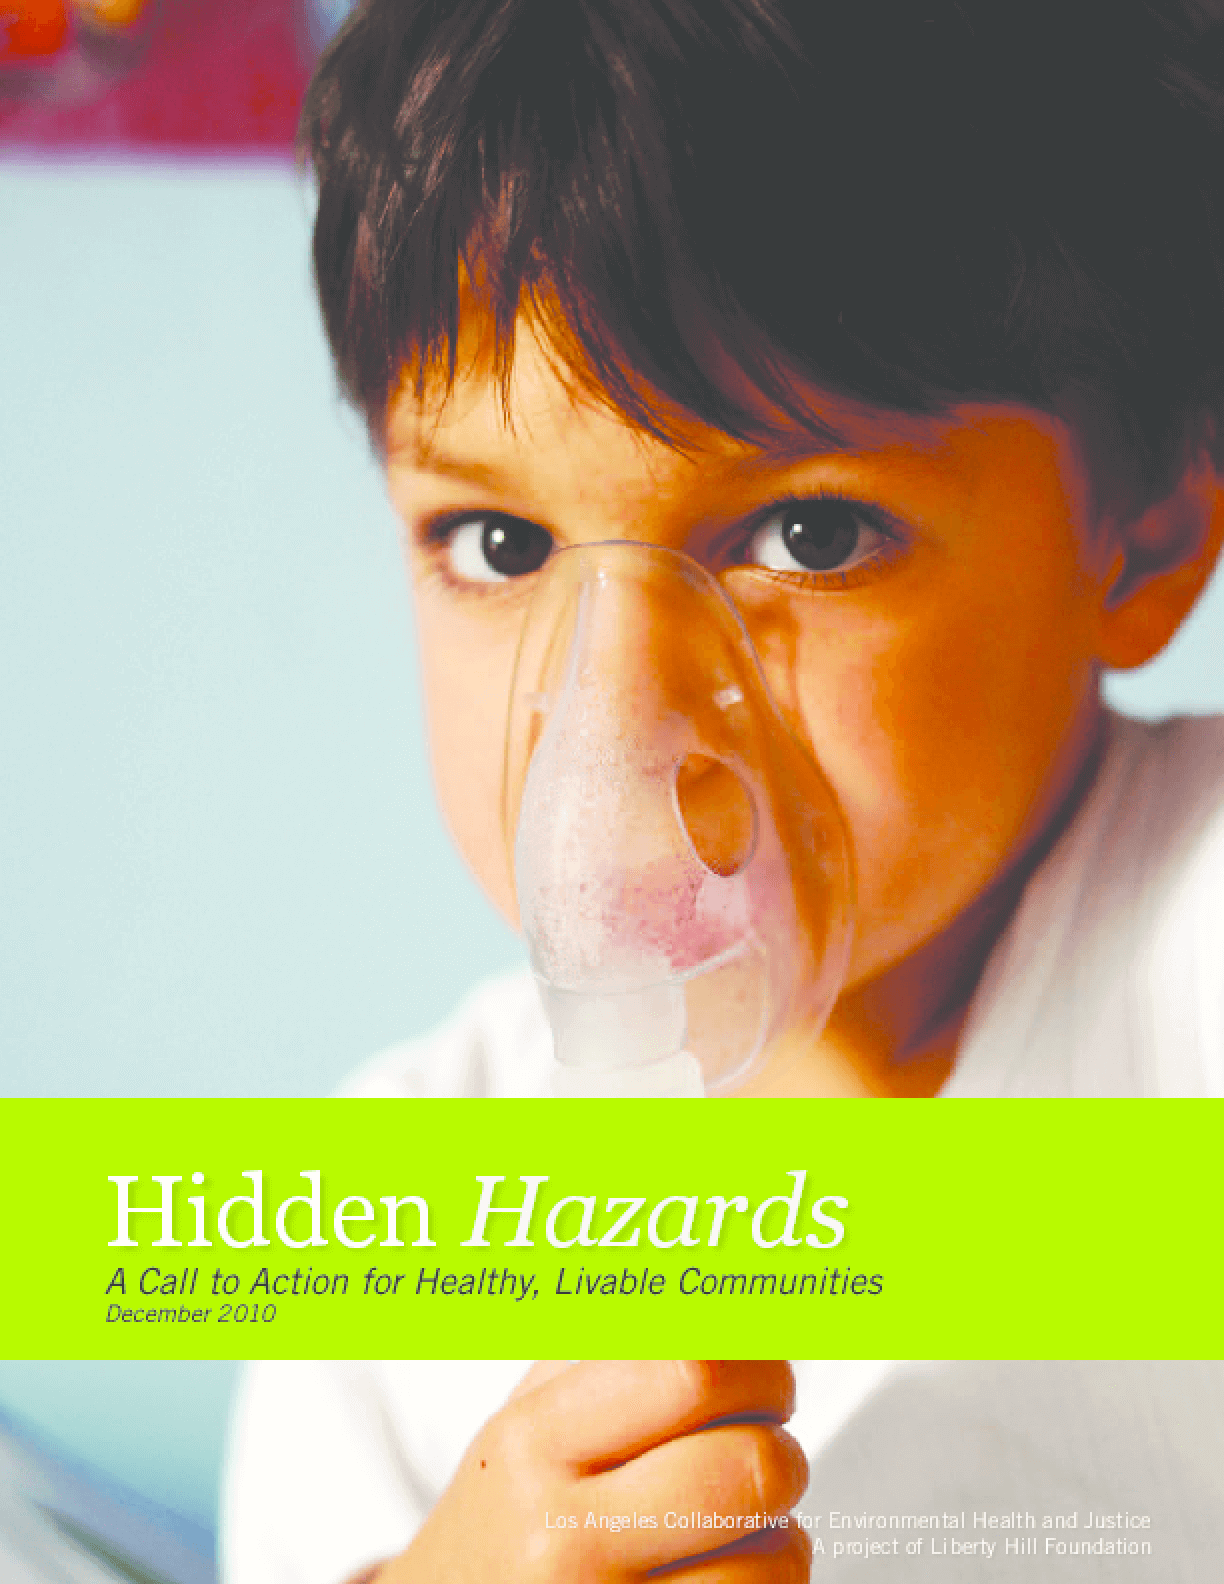 Hidden Hazards: A Call to Action for Healthy, Livable Communities